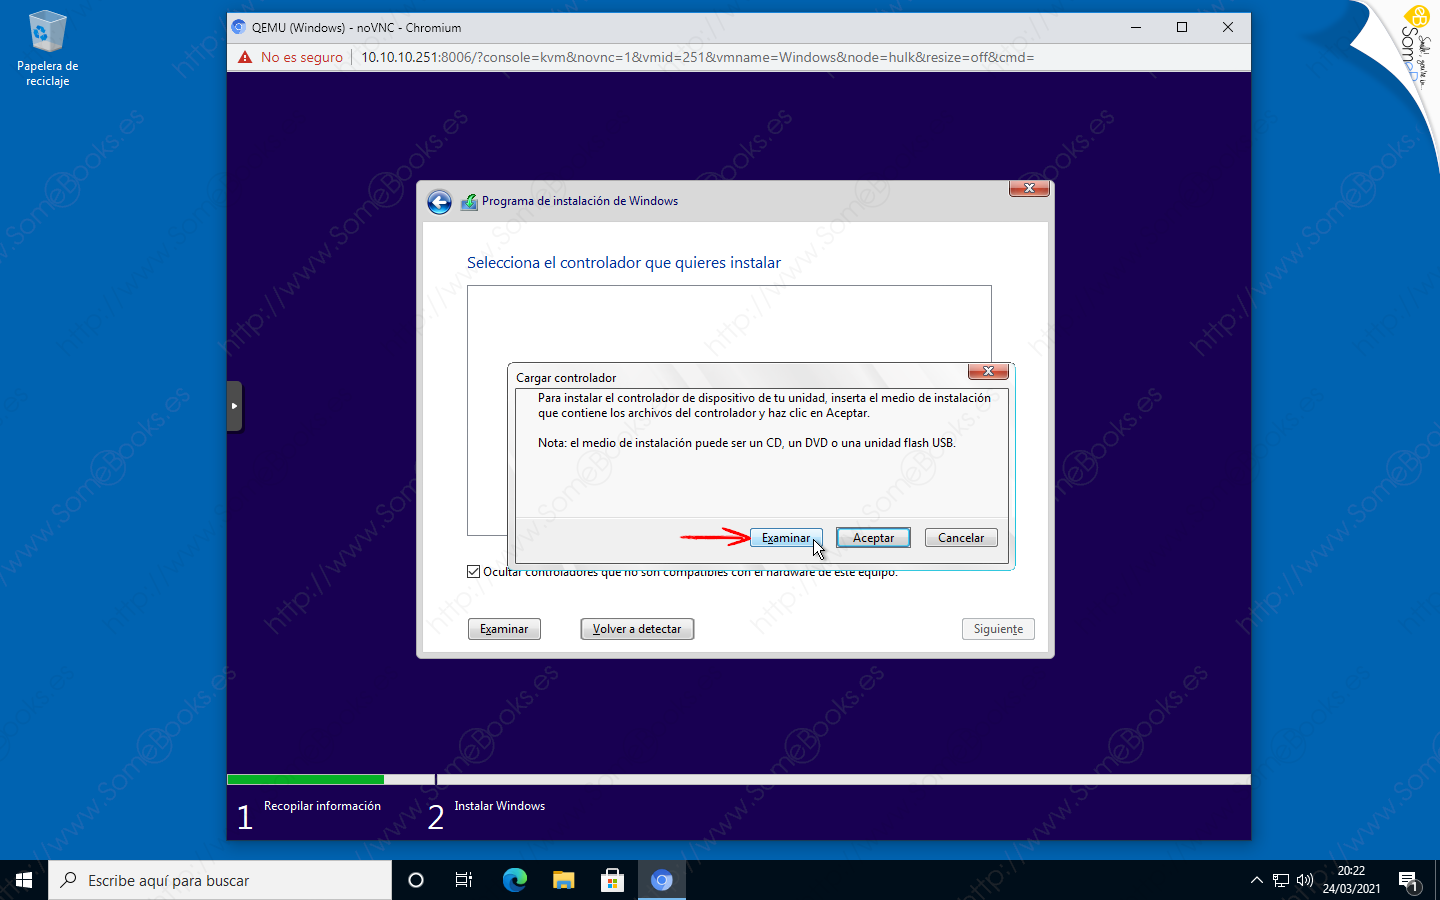 Instalar-Windows-10-en-una-maquina-virtual-sobre-Proxmox-VE-005